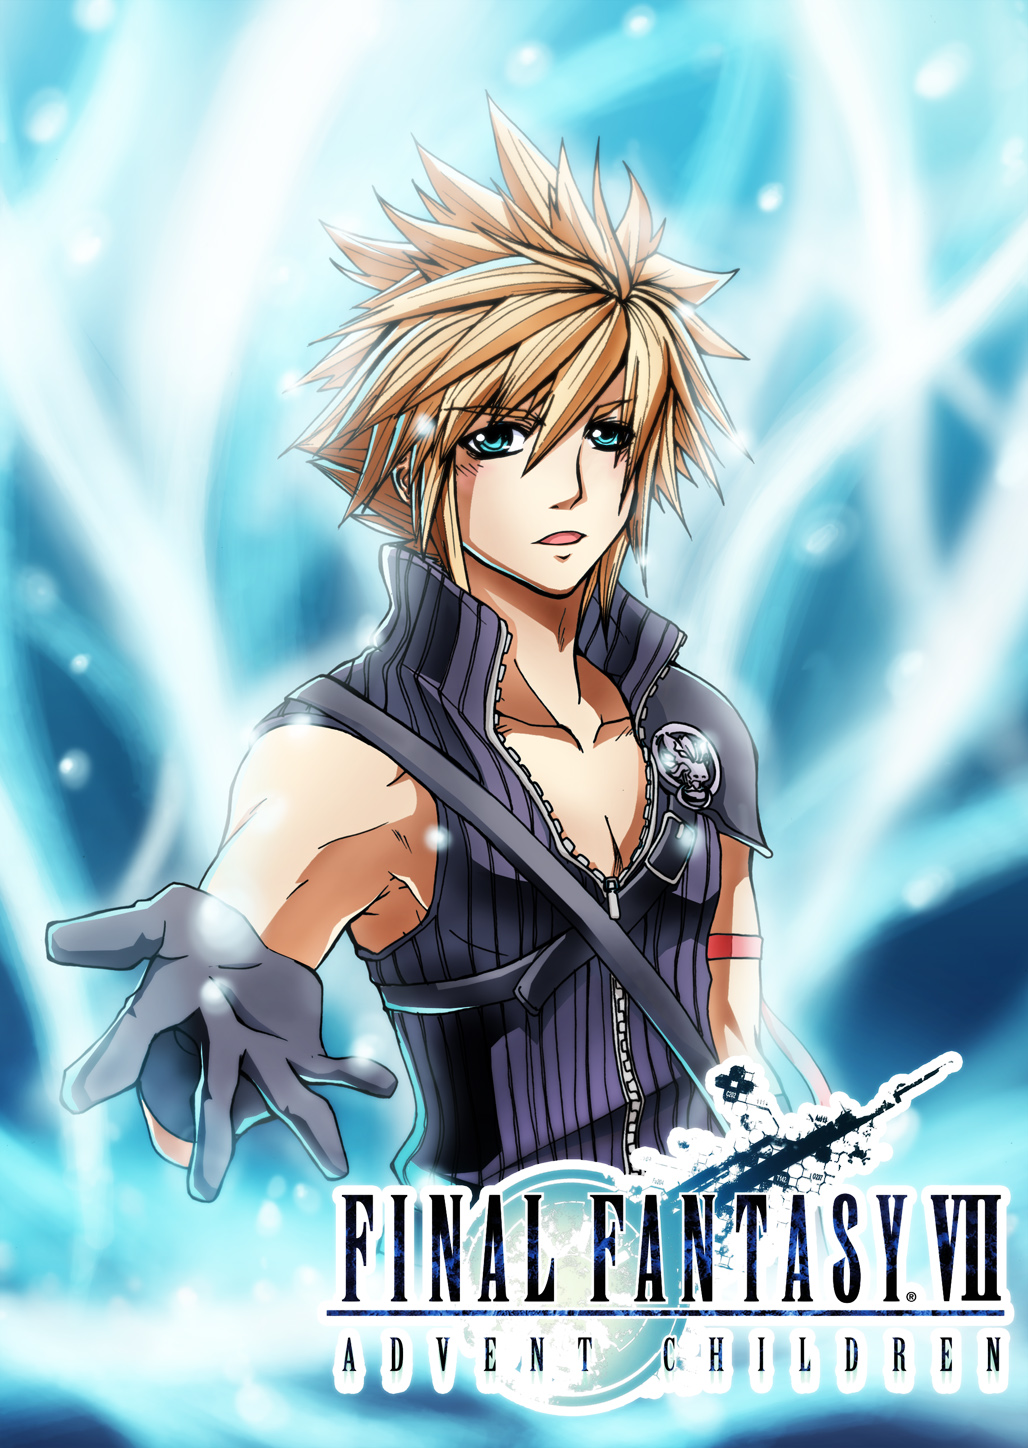 http://fc05.deviantart.net/fs23/f/2007/338/4/3/FA16__Final_Fantasy_VII__Cloud_by_mazjojo.jpg